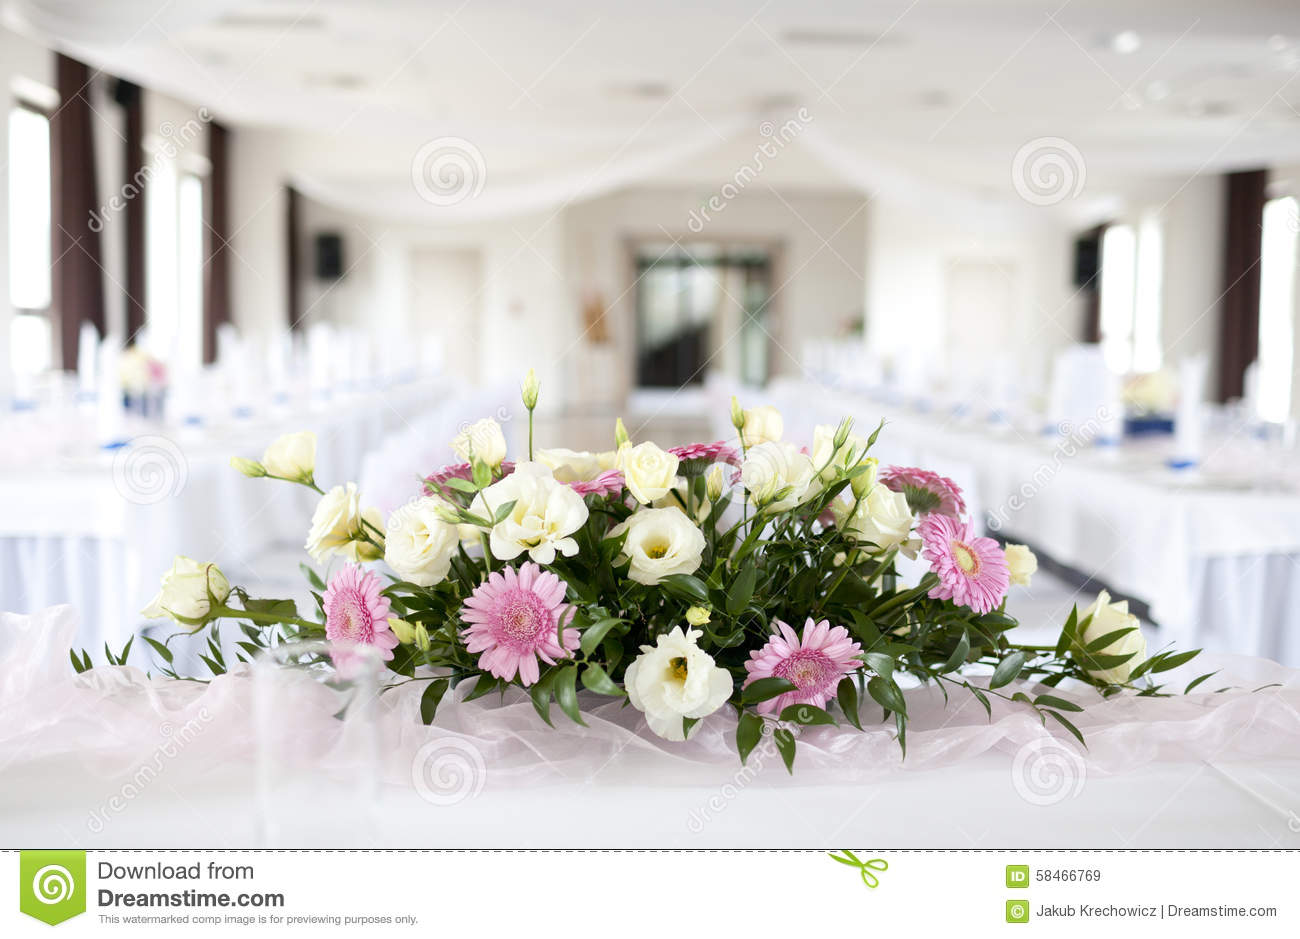 Wedding table with bouquet of flowers stock image image of bride wedding table with bouquet of flowers izmirmasajfo